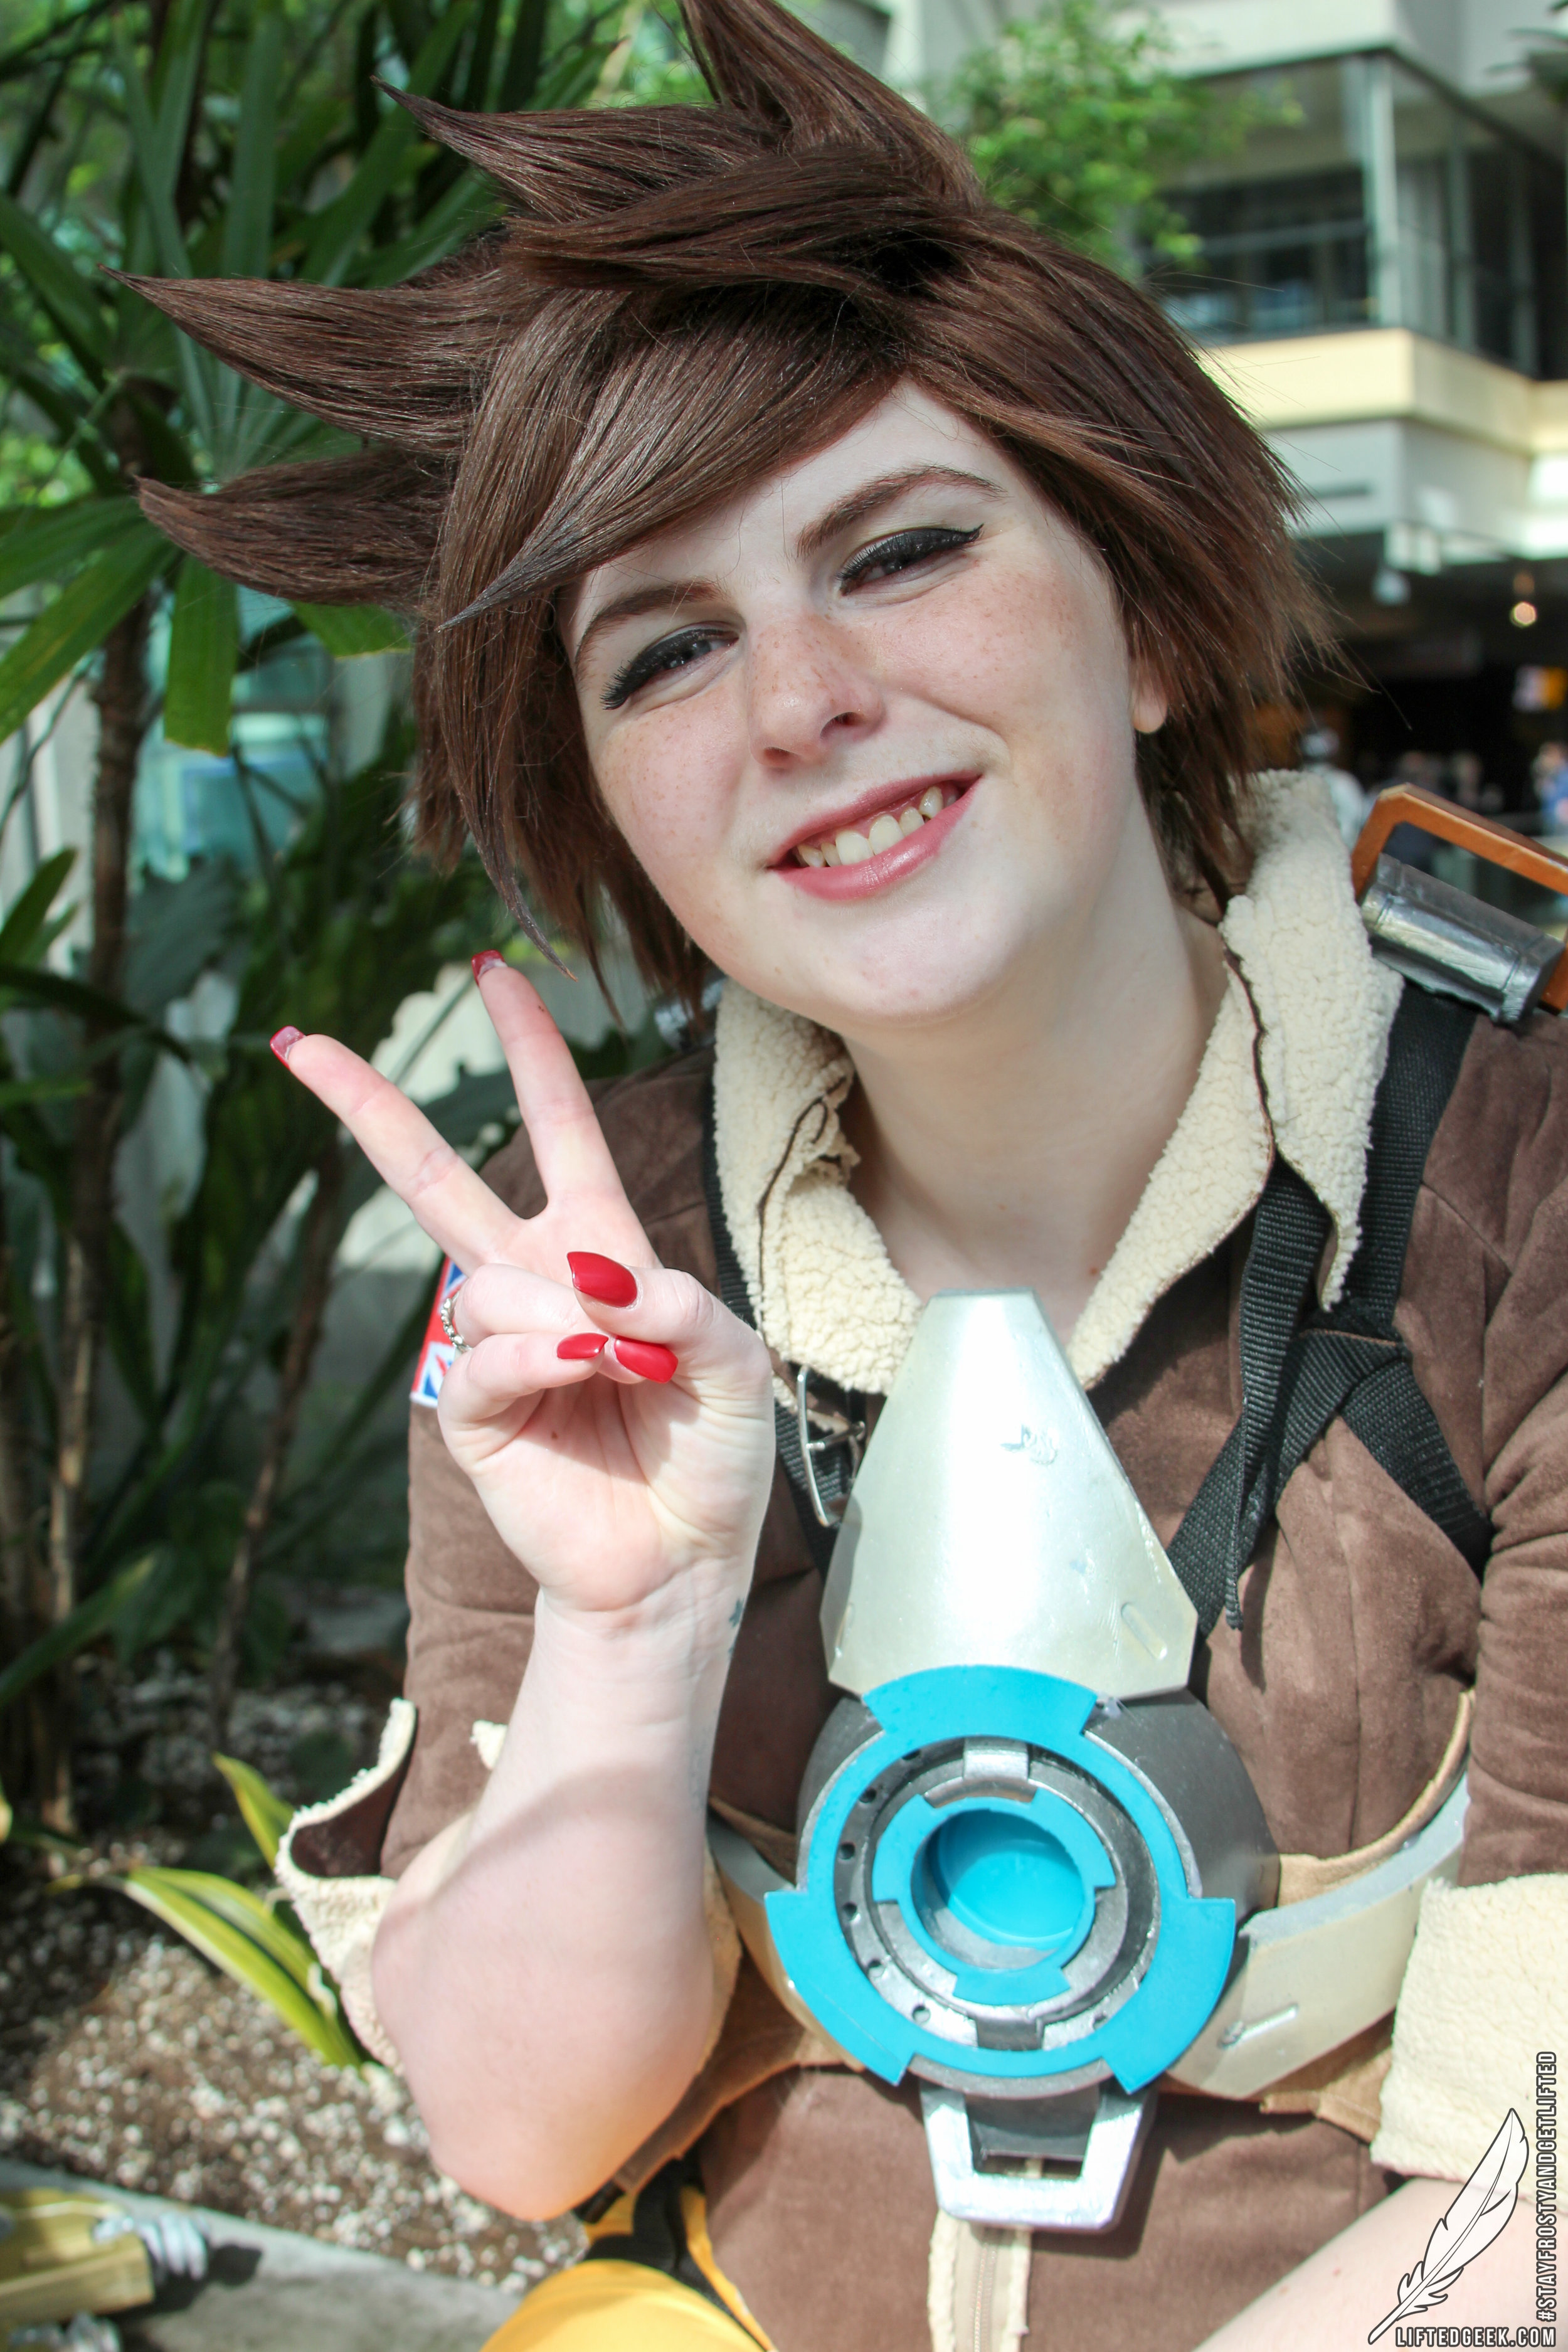 Sakuracon-cosplay-86.jpg